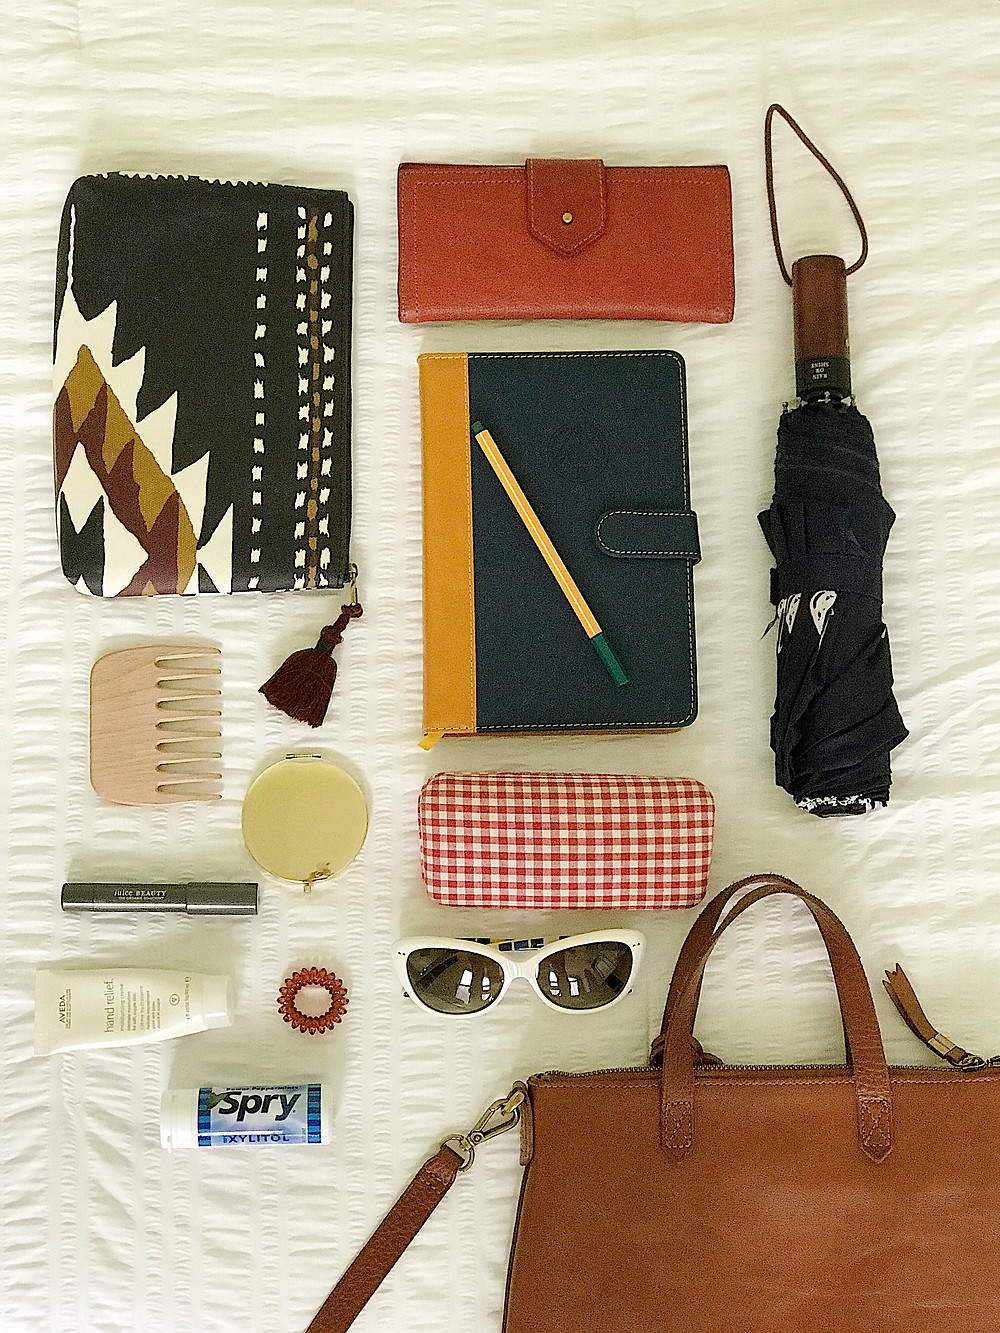 purse, wallet,umbrella, journal, pouch, sunglasses, comb, mirror